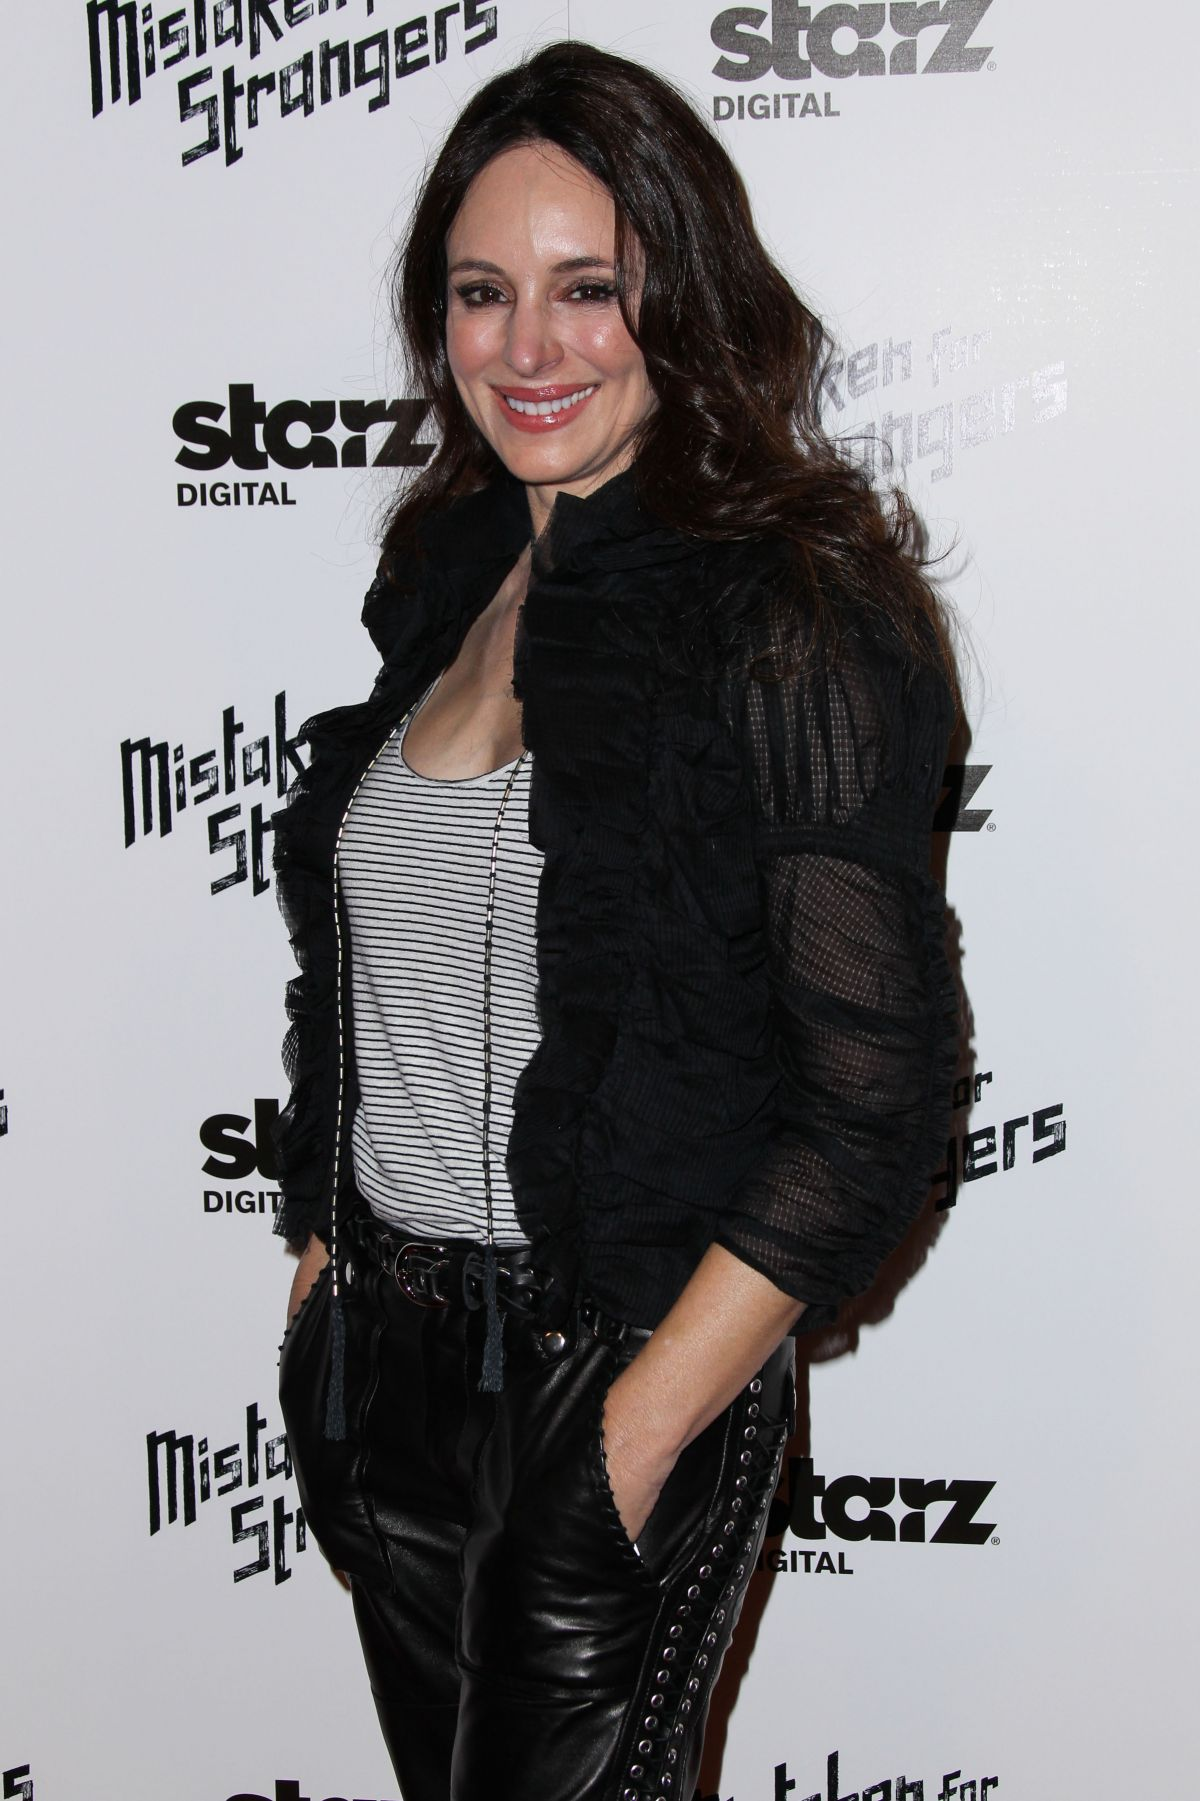 MADELEINE STOWE at Mistaken for Strangers Screening in Los Angeles